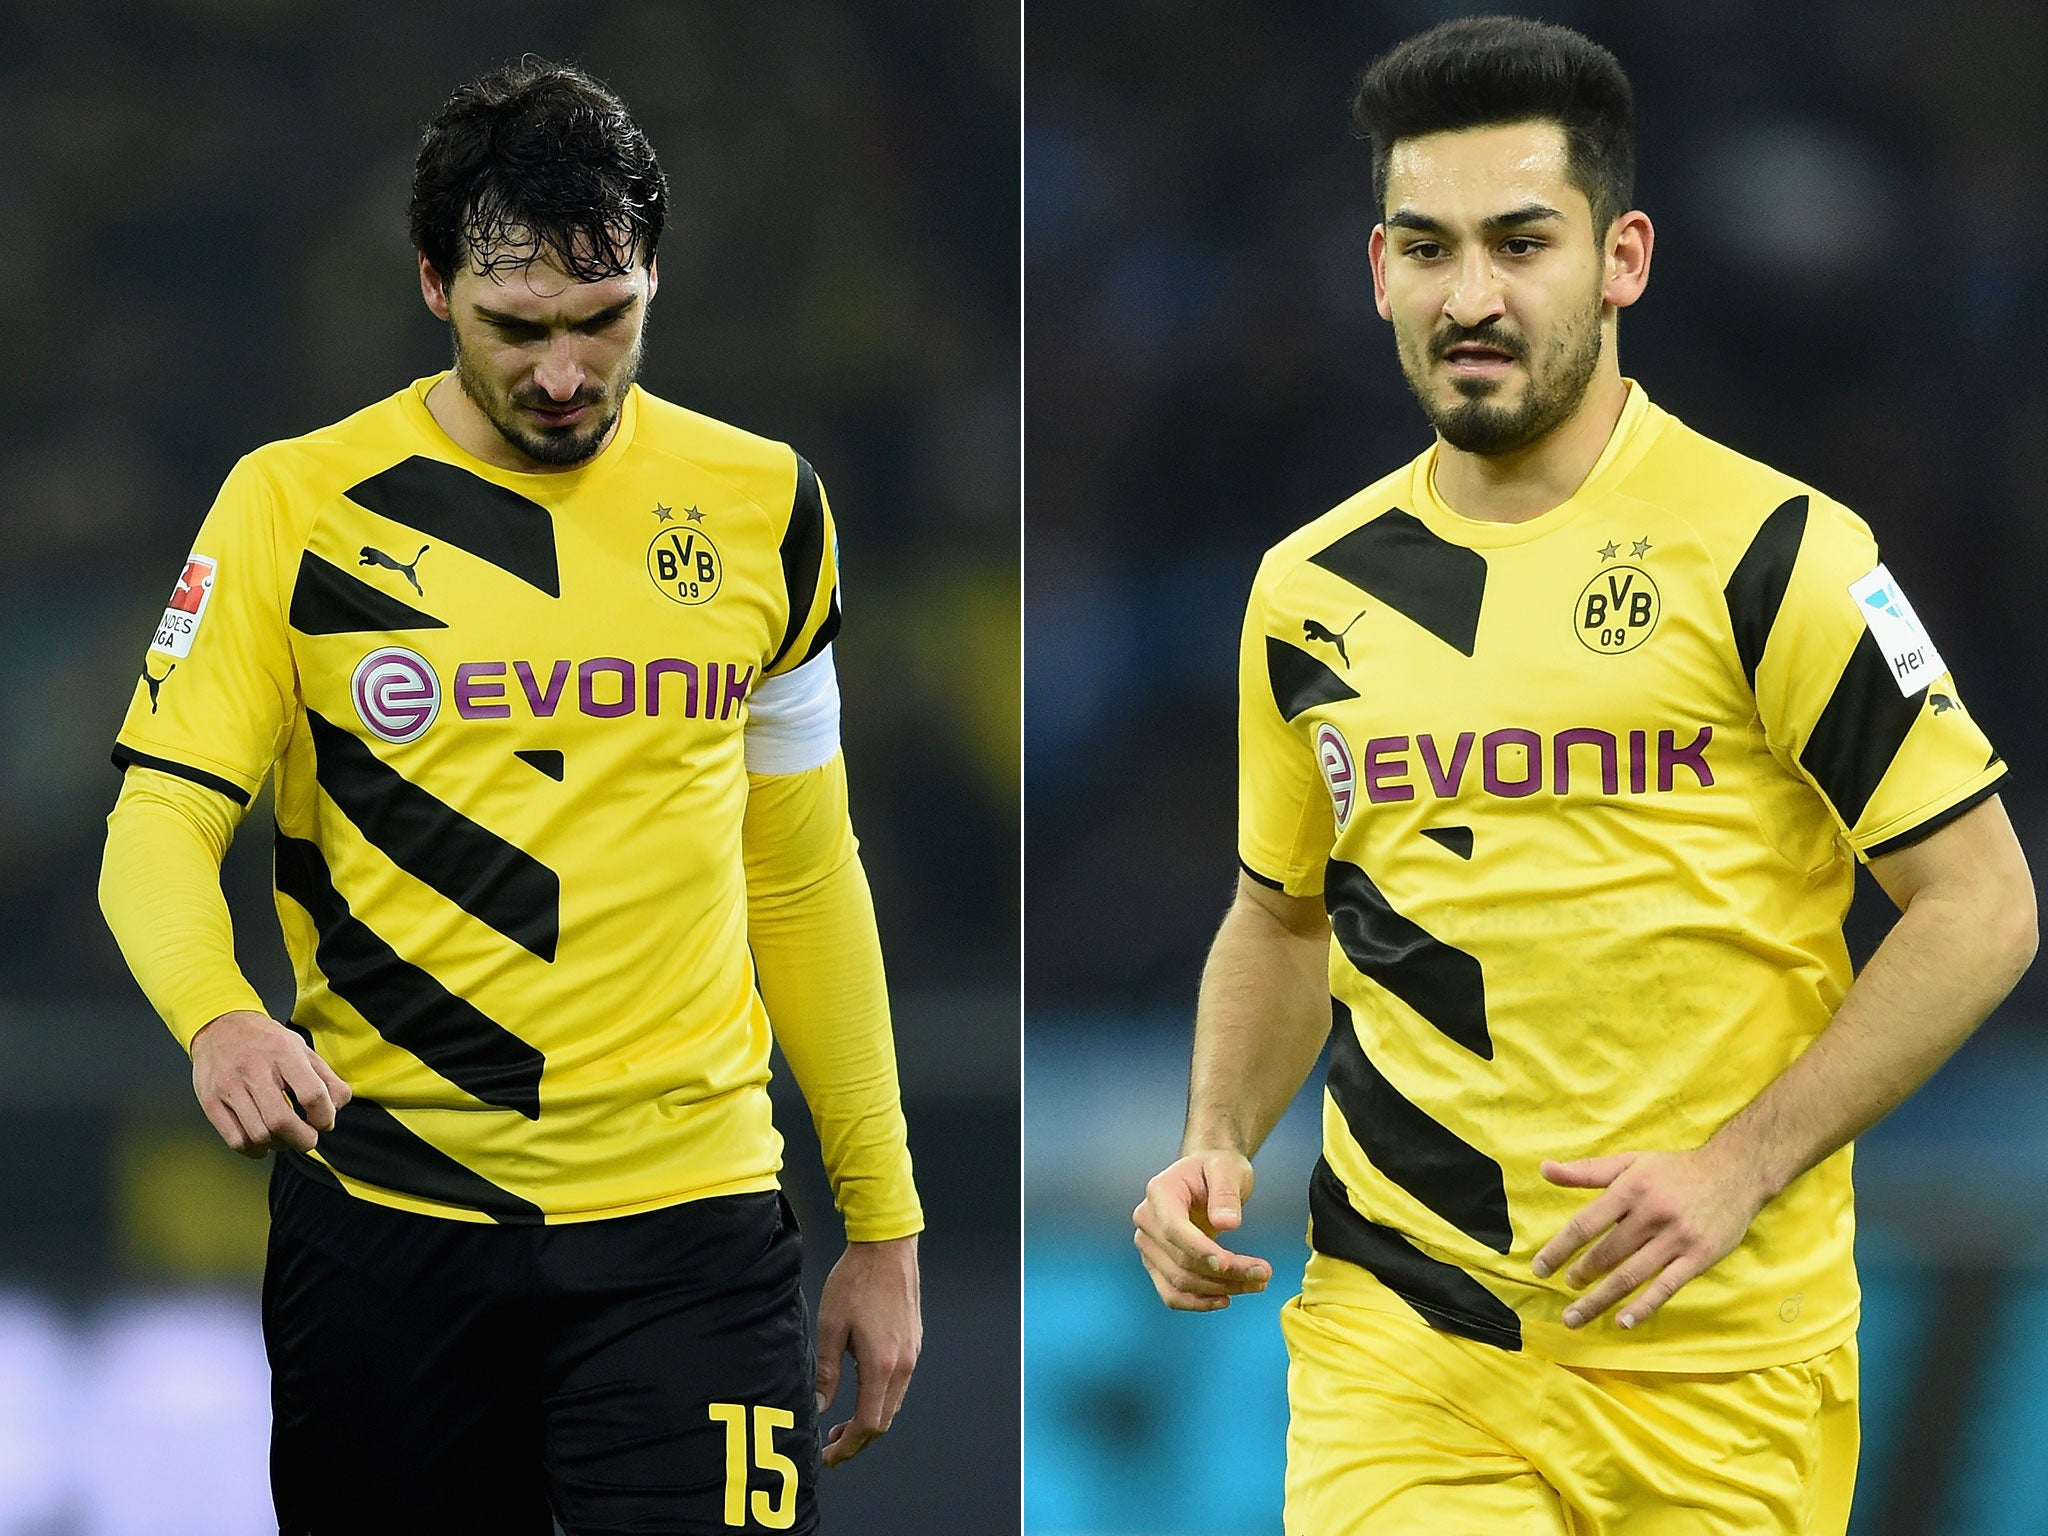 Manchester United pursuit of Ilkay Gundogan and Mats Hummels